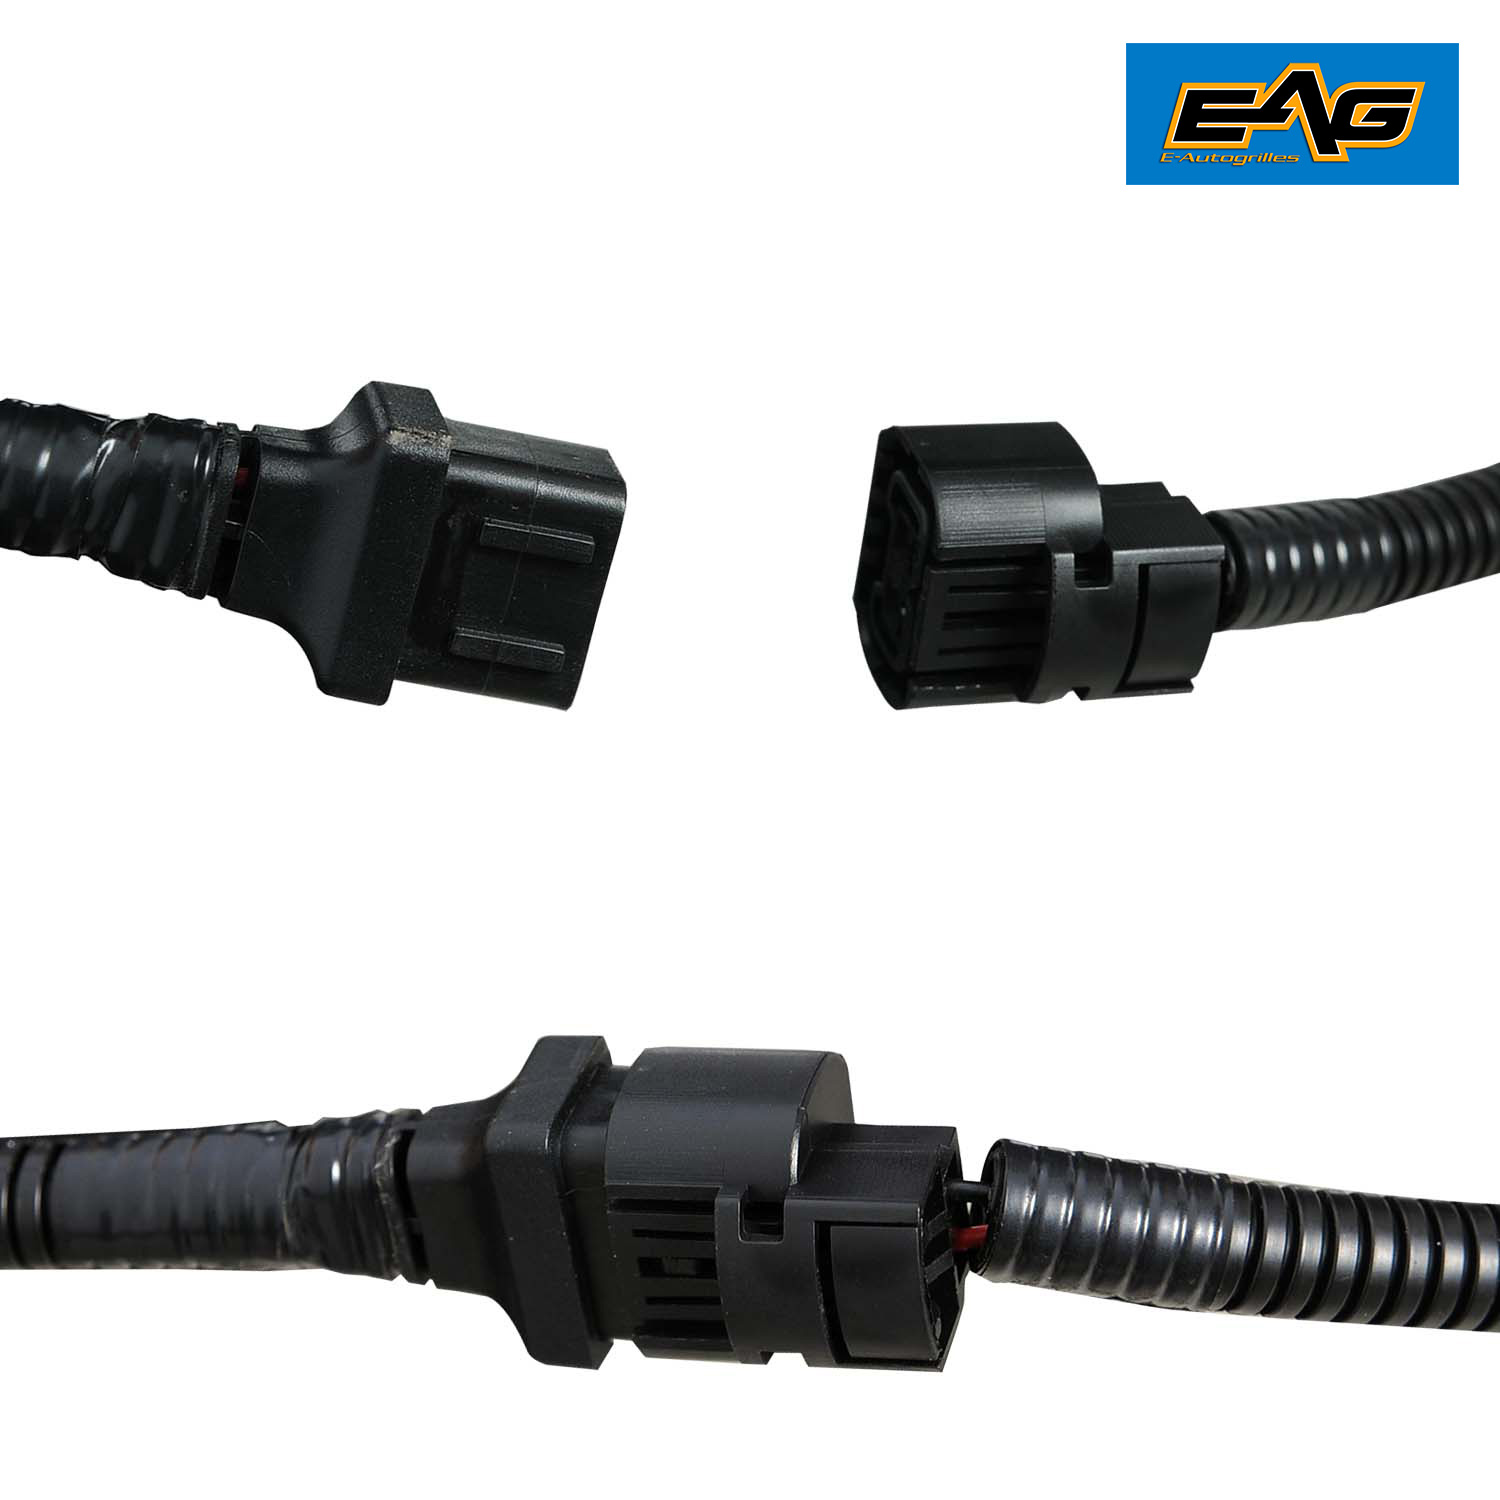 Details about EAG 18 inch Fog Light Extension Wire Harness Fit for on